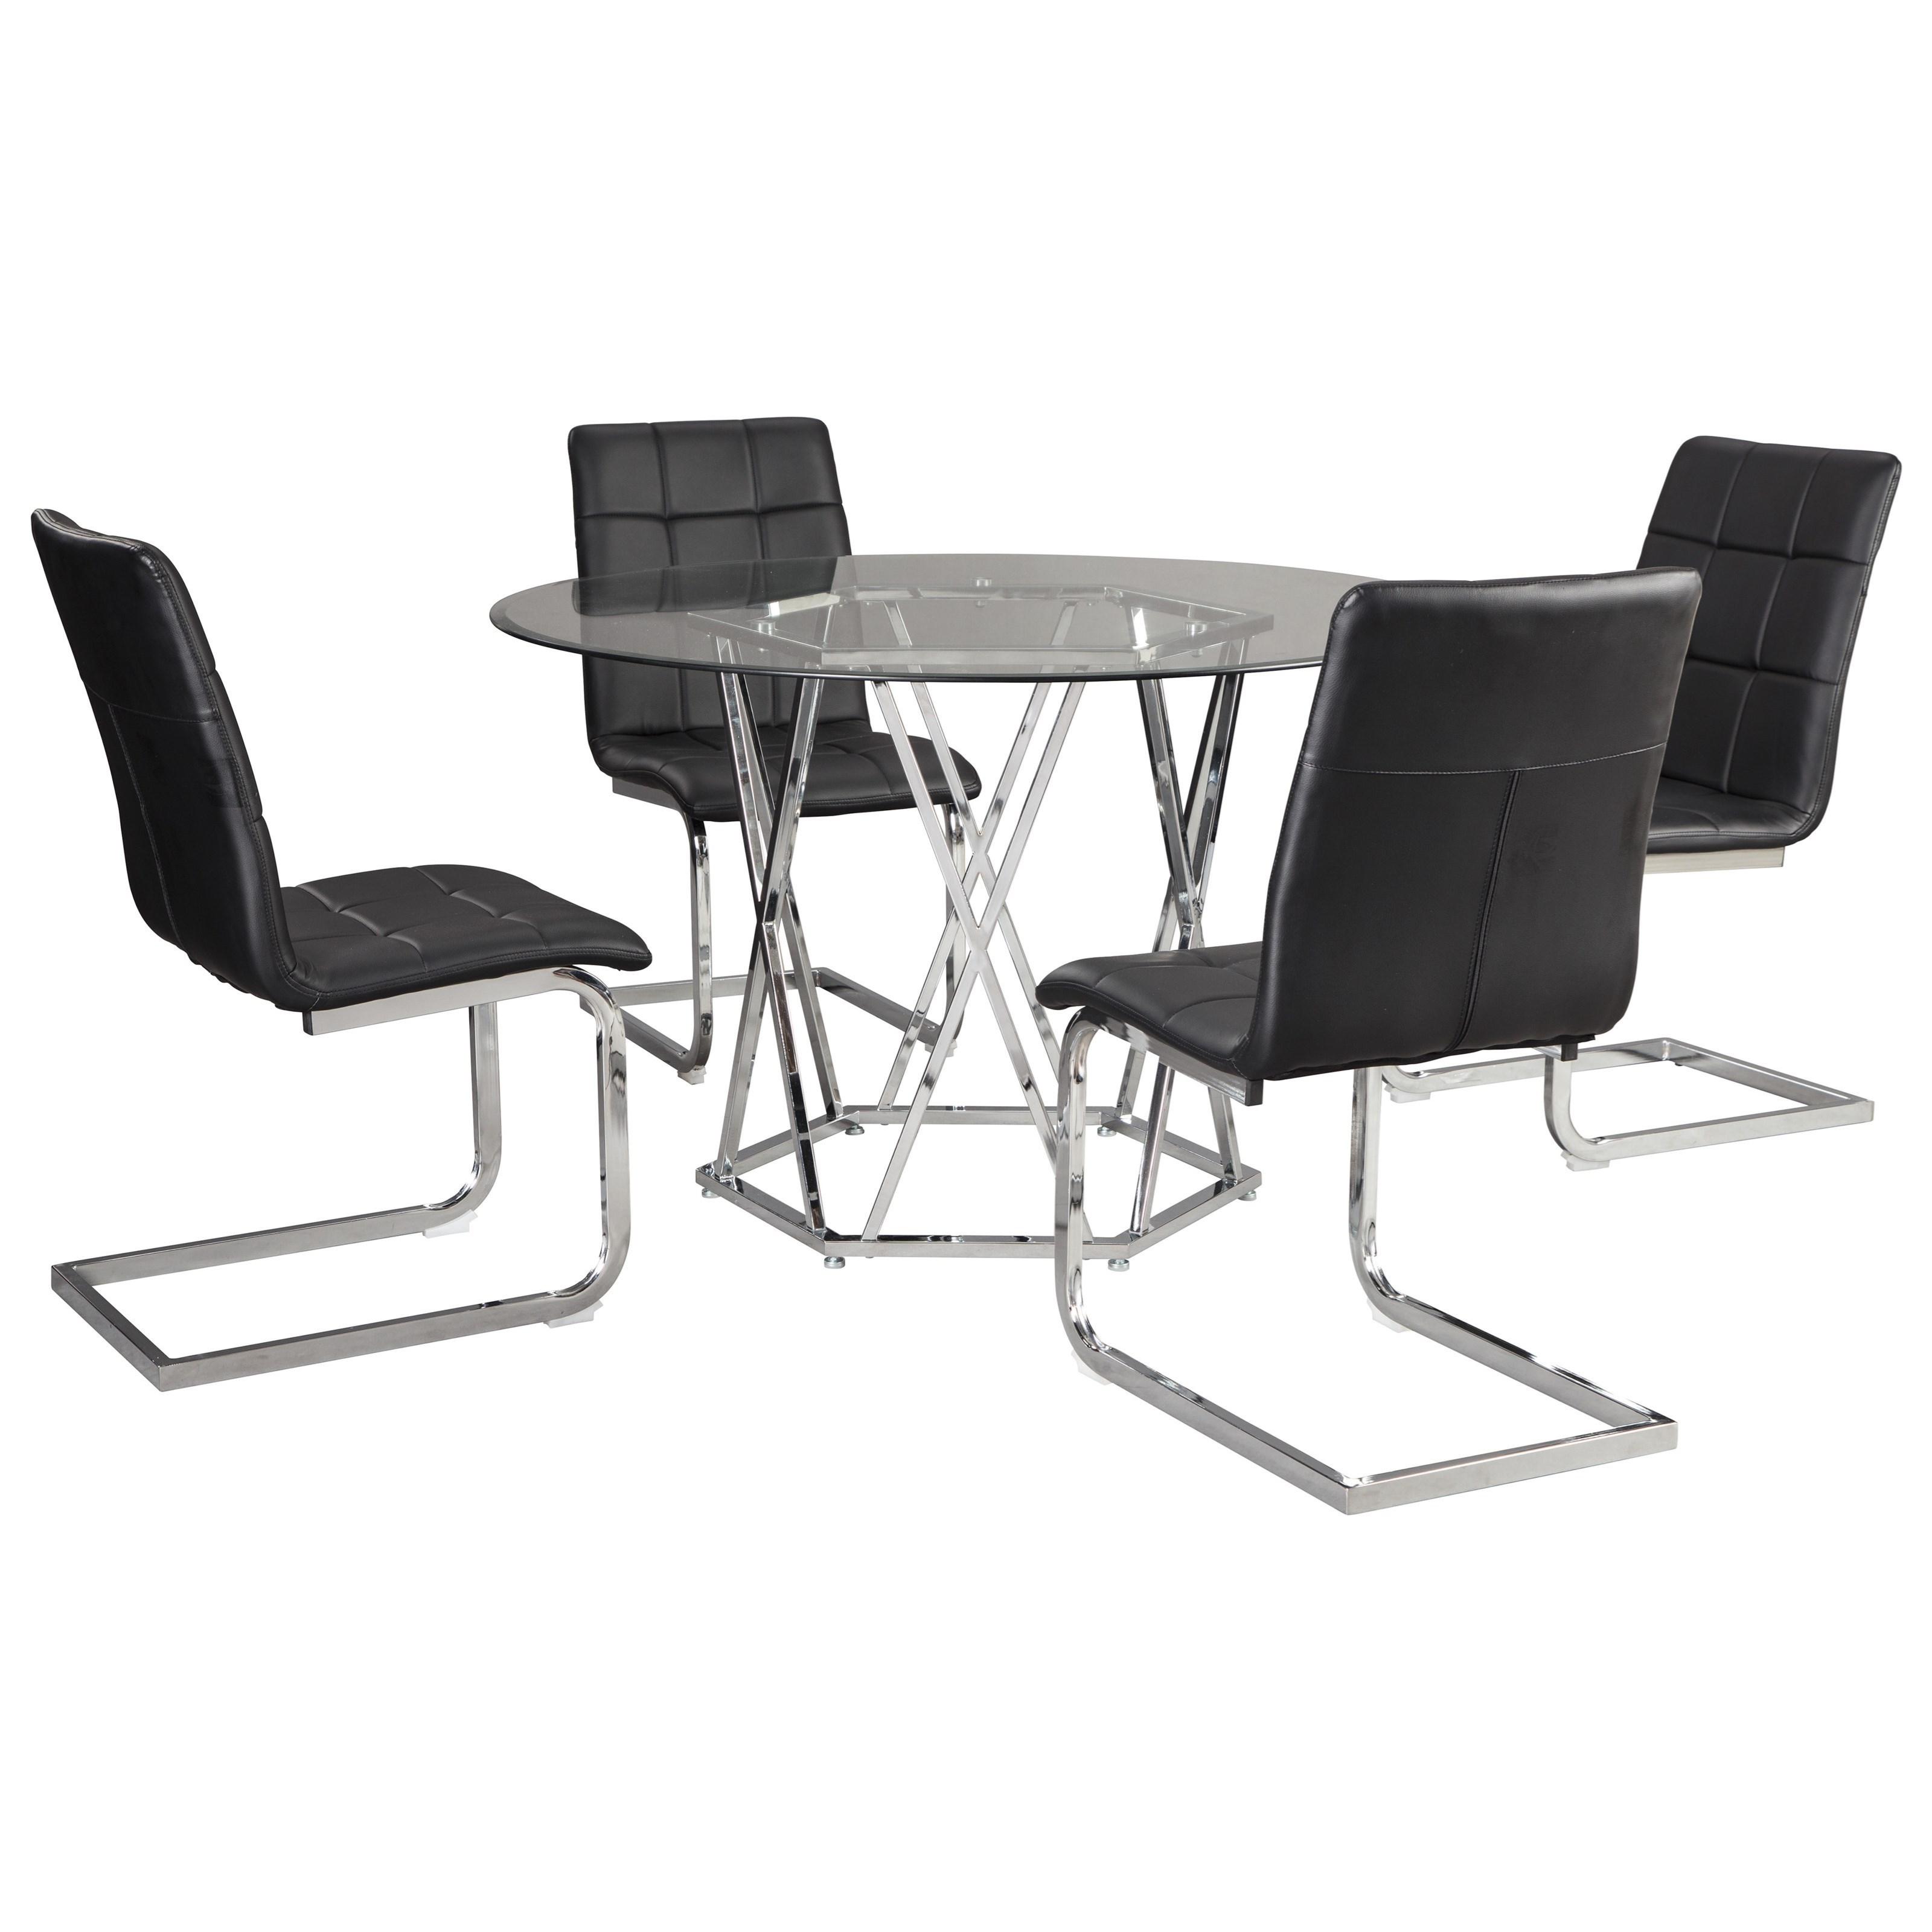 Madanere  5-Piece Dining Set by Signature Design by Ashley at Godby Home Furnishings